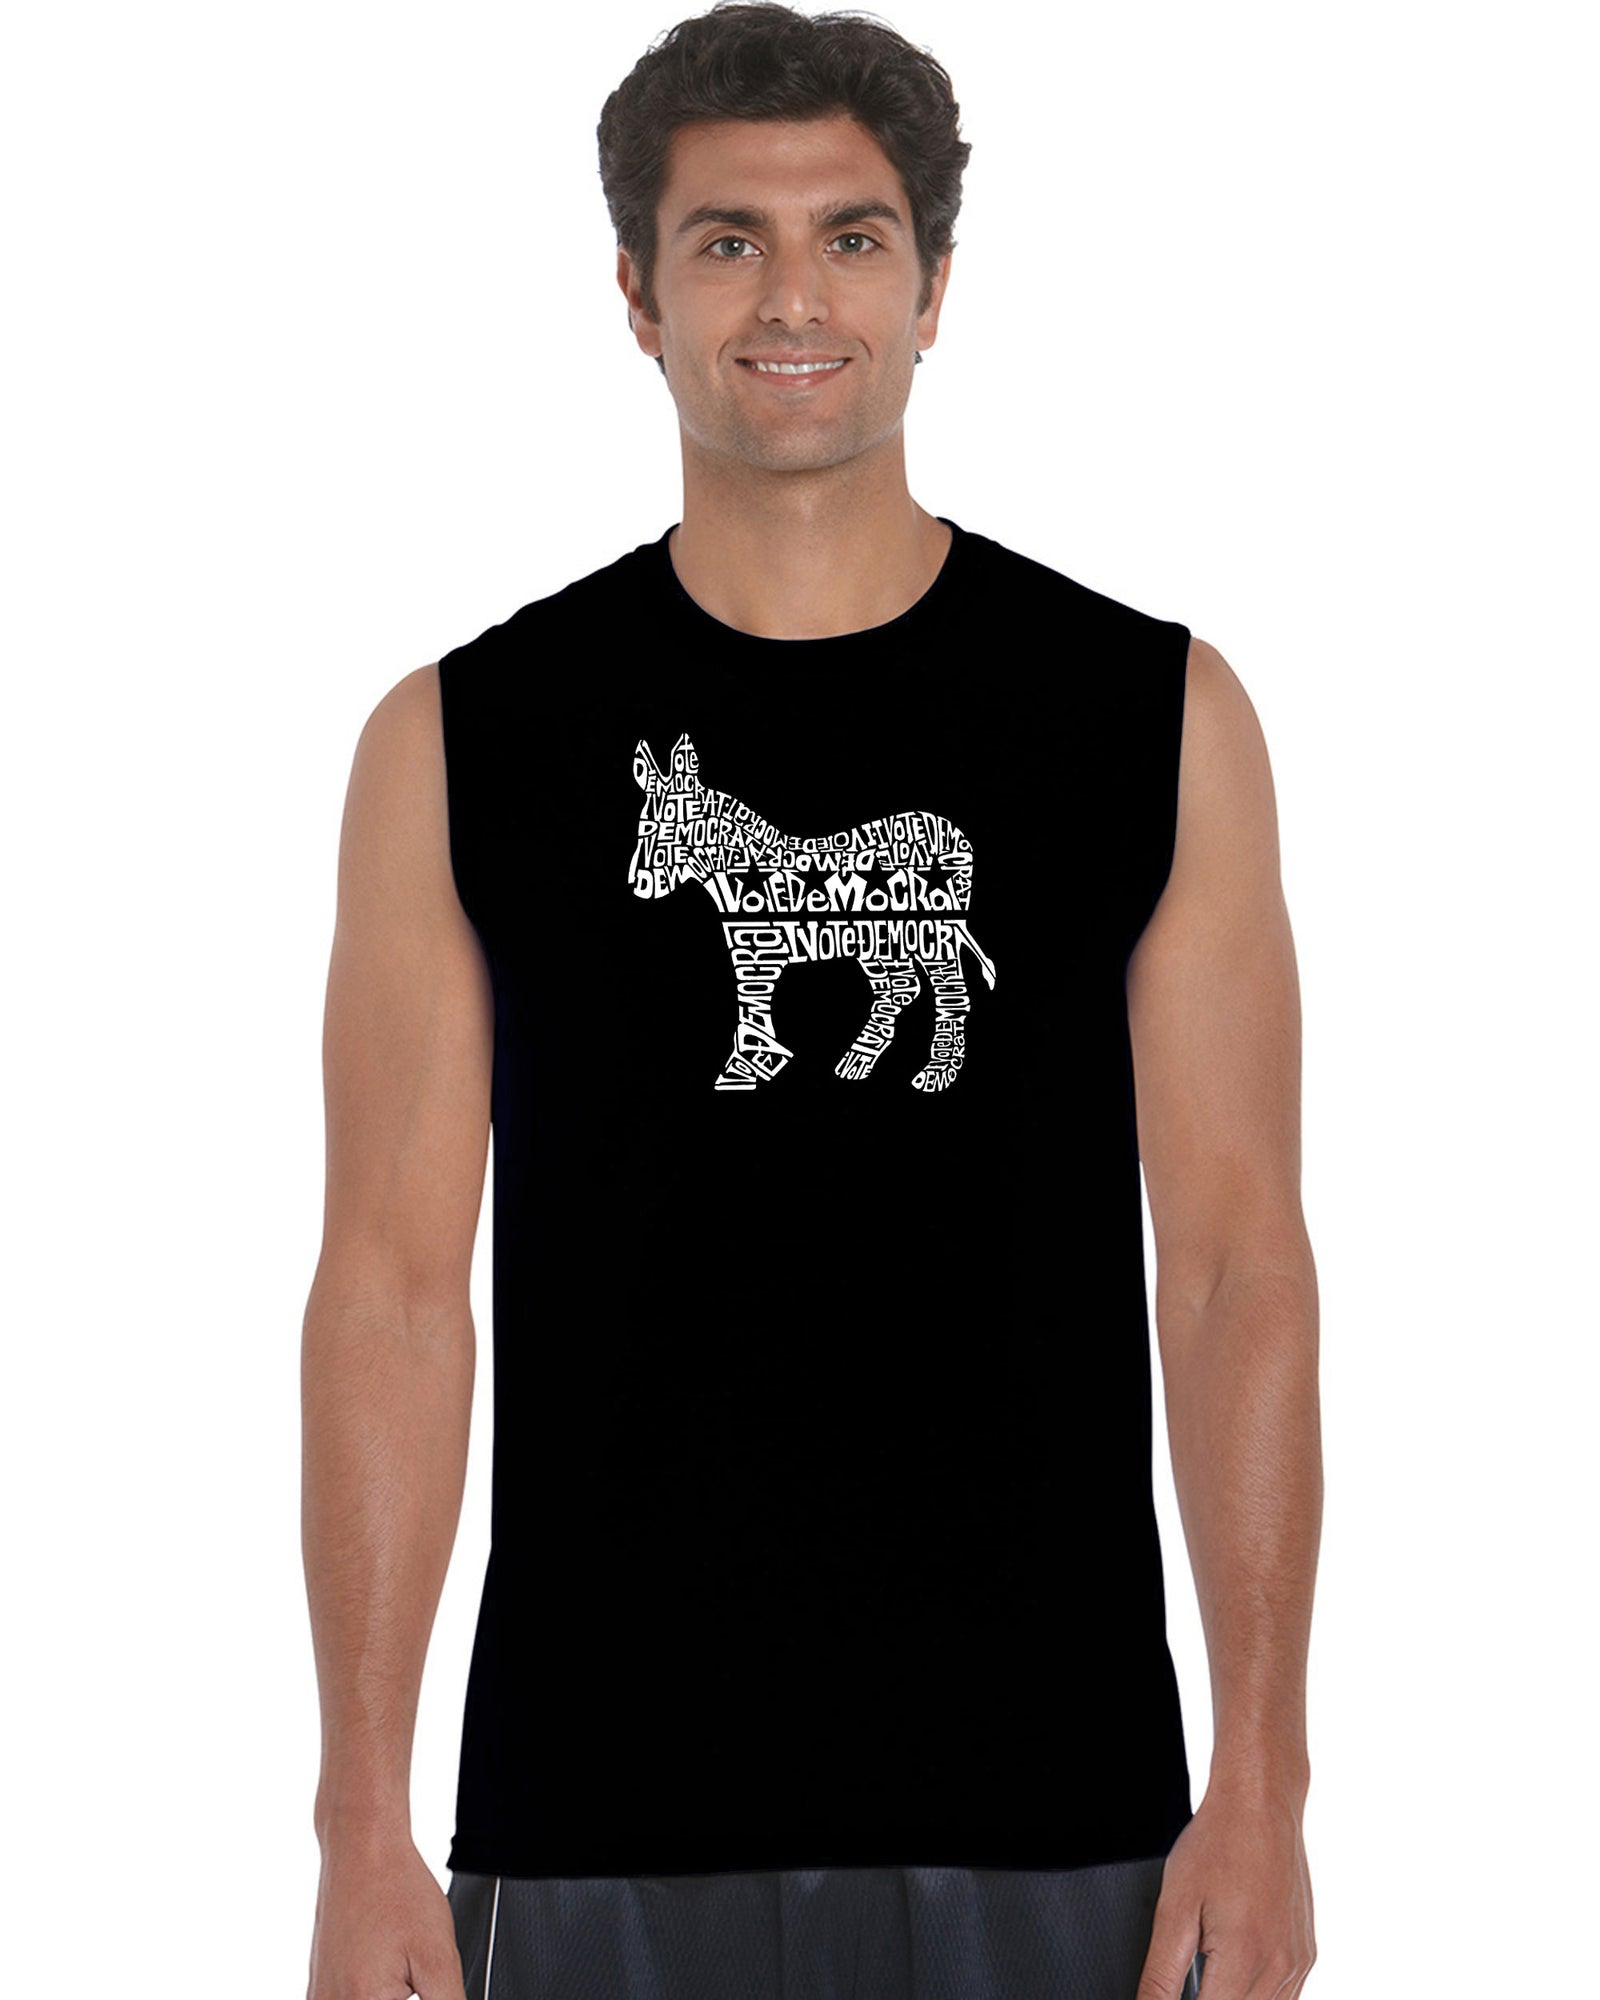 Men's Sleeveless T-shirt - I Vote Democrat